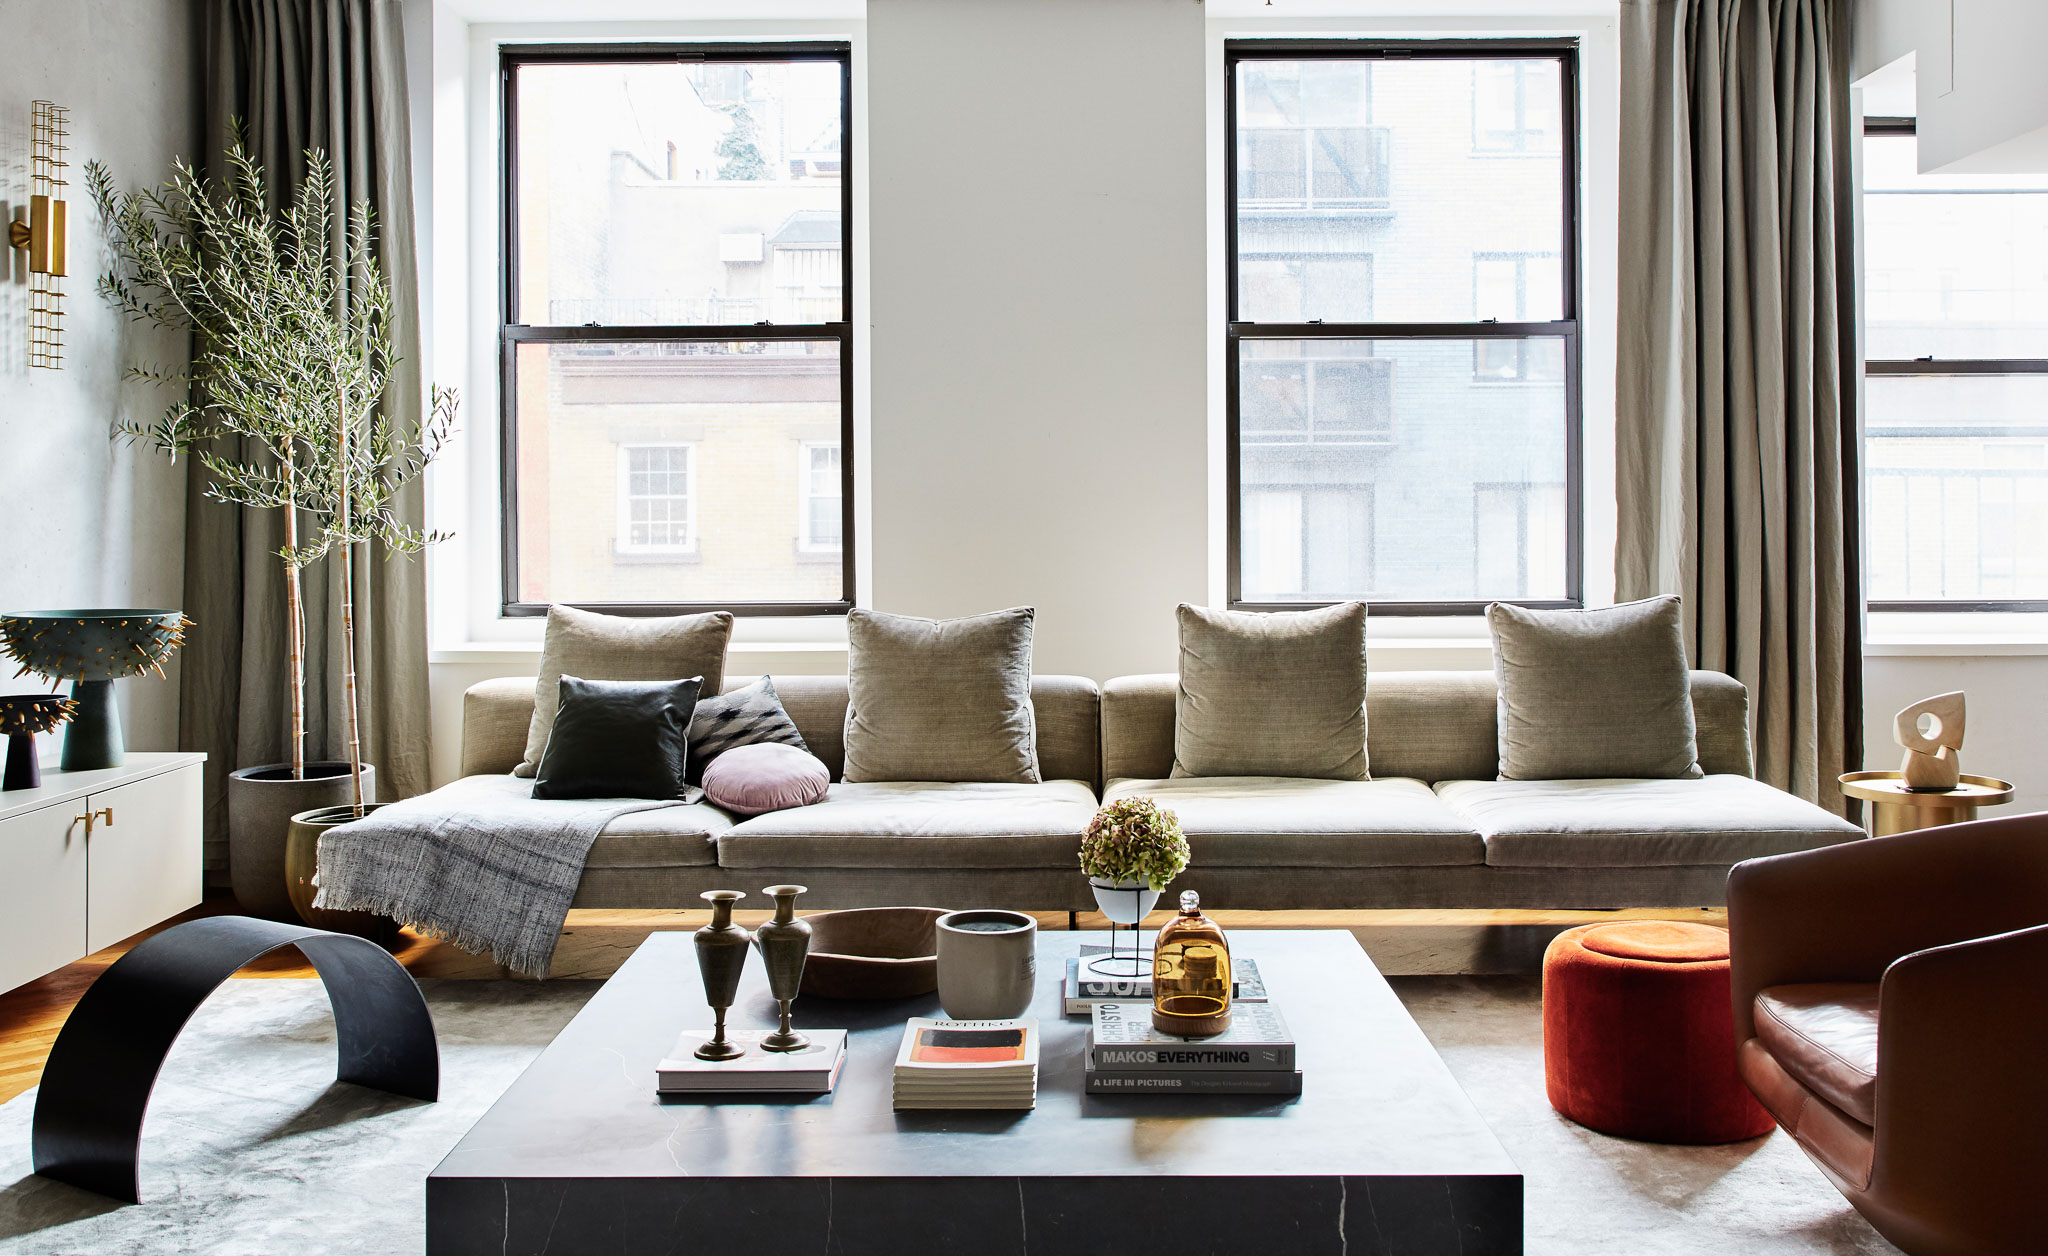 Living Room Decor Trends To Follow In 2018: Designer Tali Roth Talks About Decorating Her Chelsea Loft